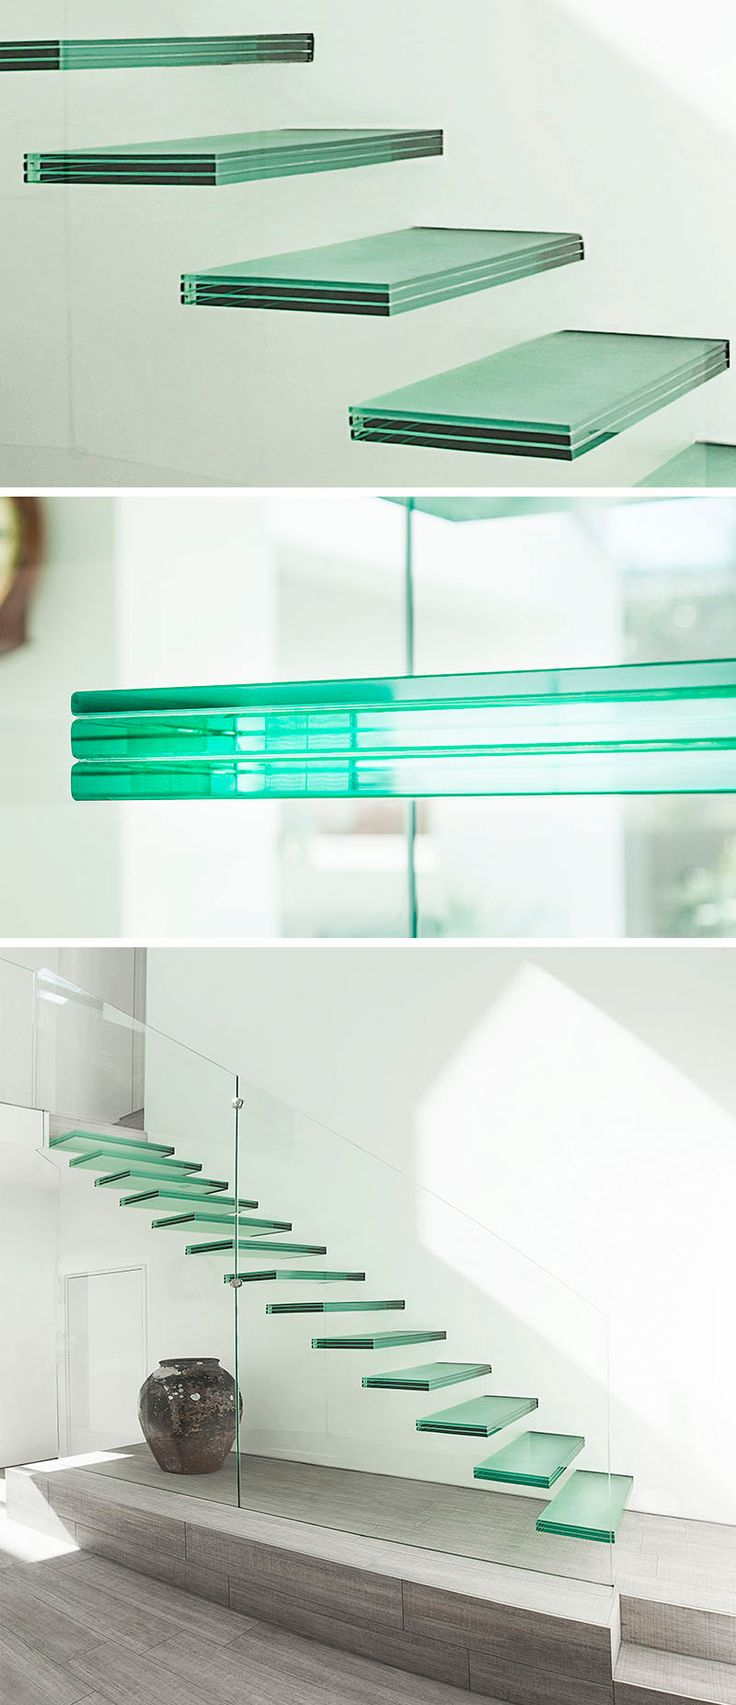 18 Examples Of Stair Details To Inspire You // Each tread on these glass stairs…